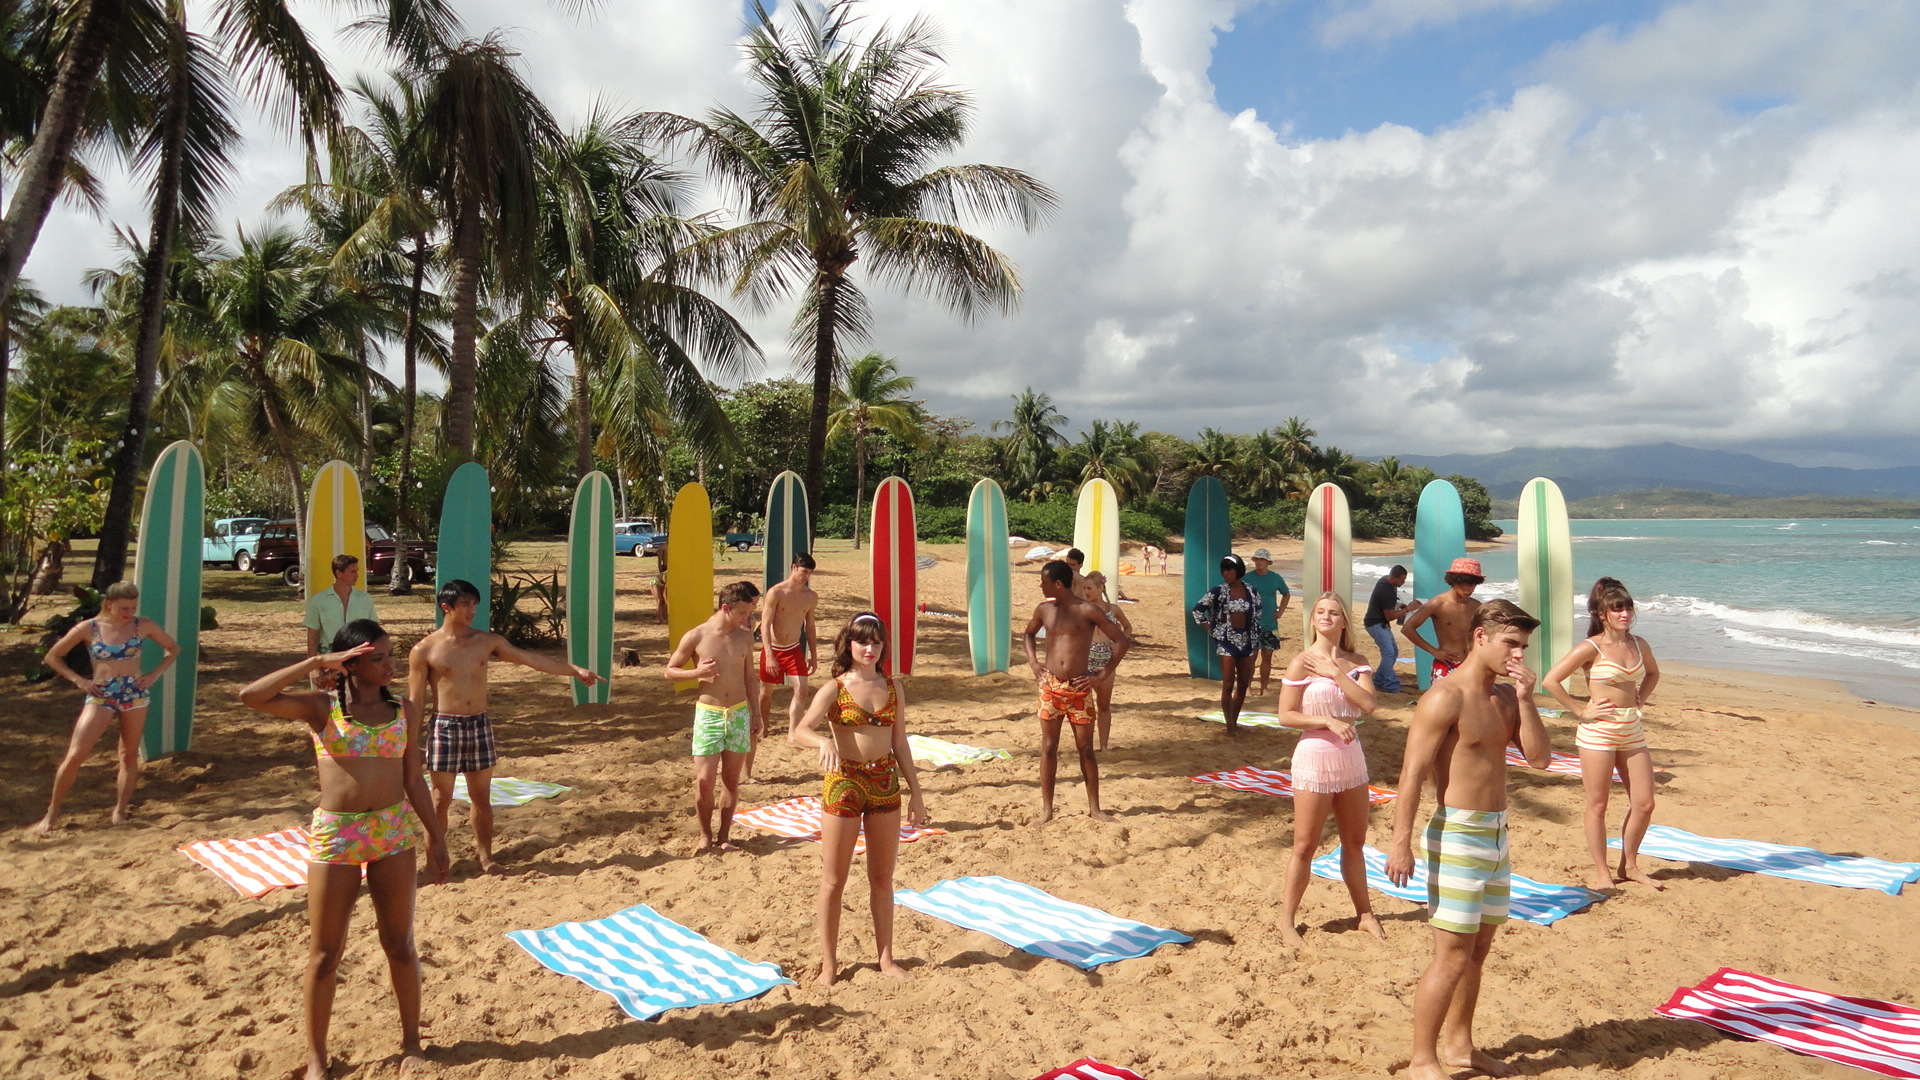 """Teen Beach Movie is a film within a film, in which two contemporary kids (Ross Lynch and Maia Mitchell) are sucked through a wormhole into a Frankie and Annette-style beach musical set in 1962. Here in the 1962 period is the """"cast"""" of the film within the film preparing to dance among a few of the more than 100 custom surfboards we had made."""